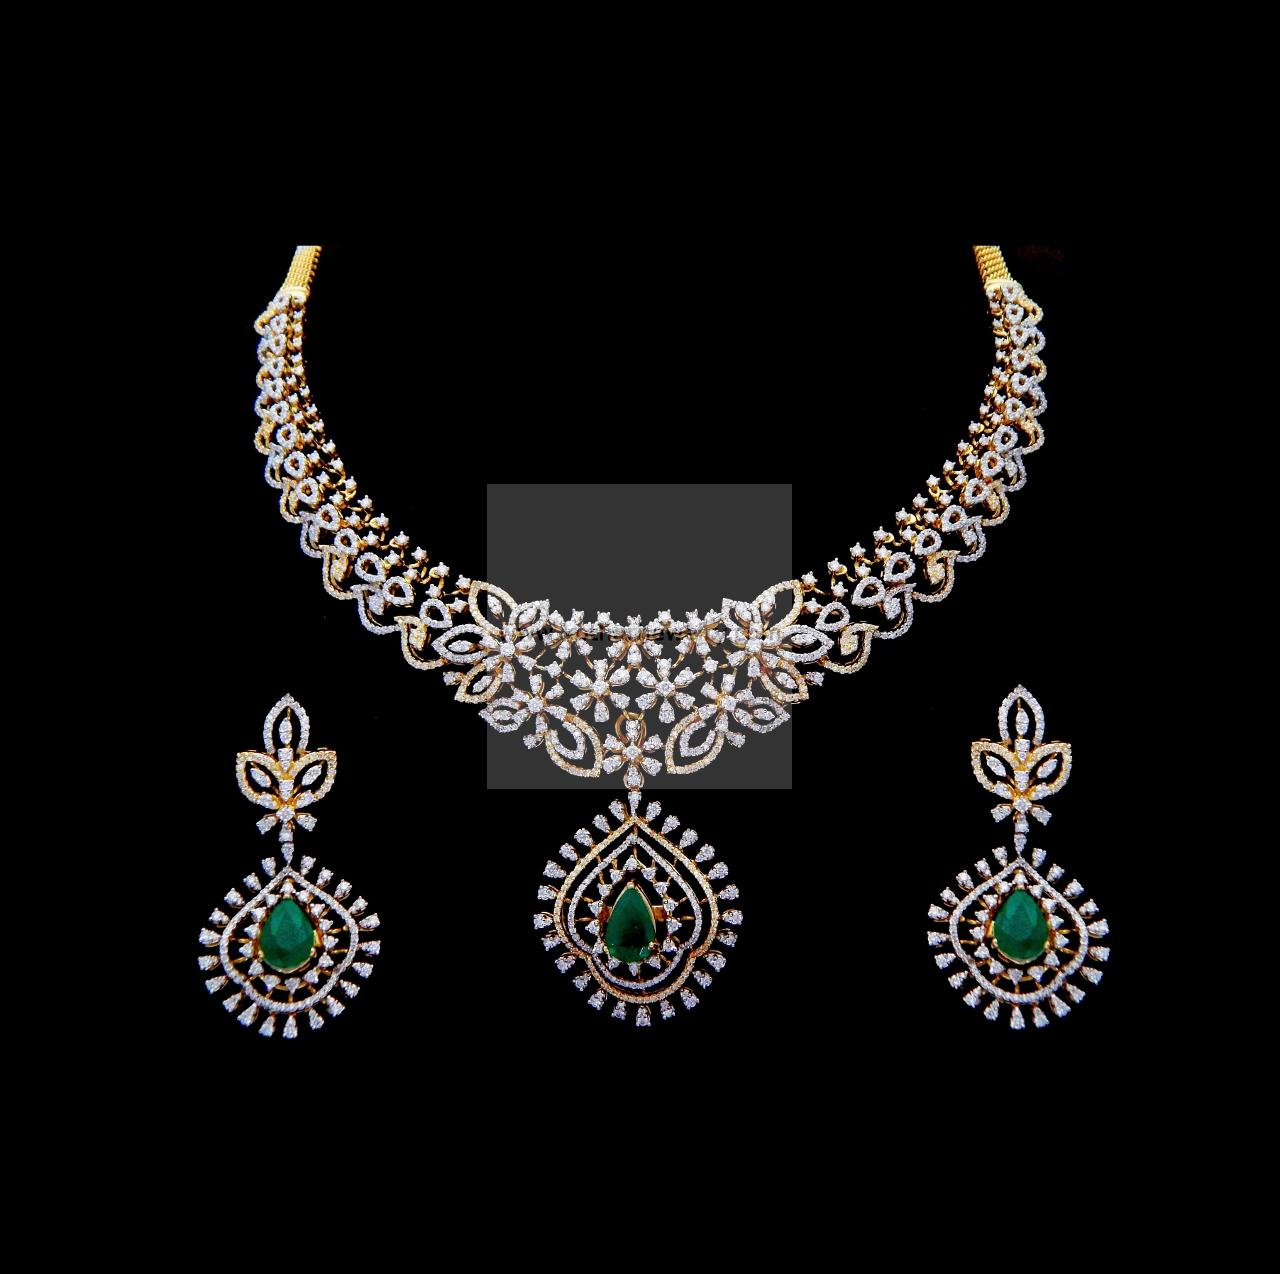 broad necklace necklaces latest diamond models indian and wedding set gold watch